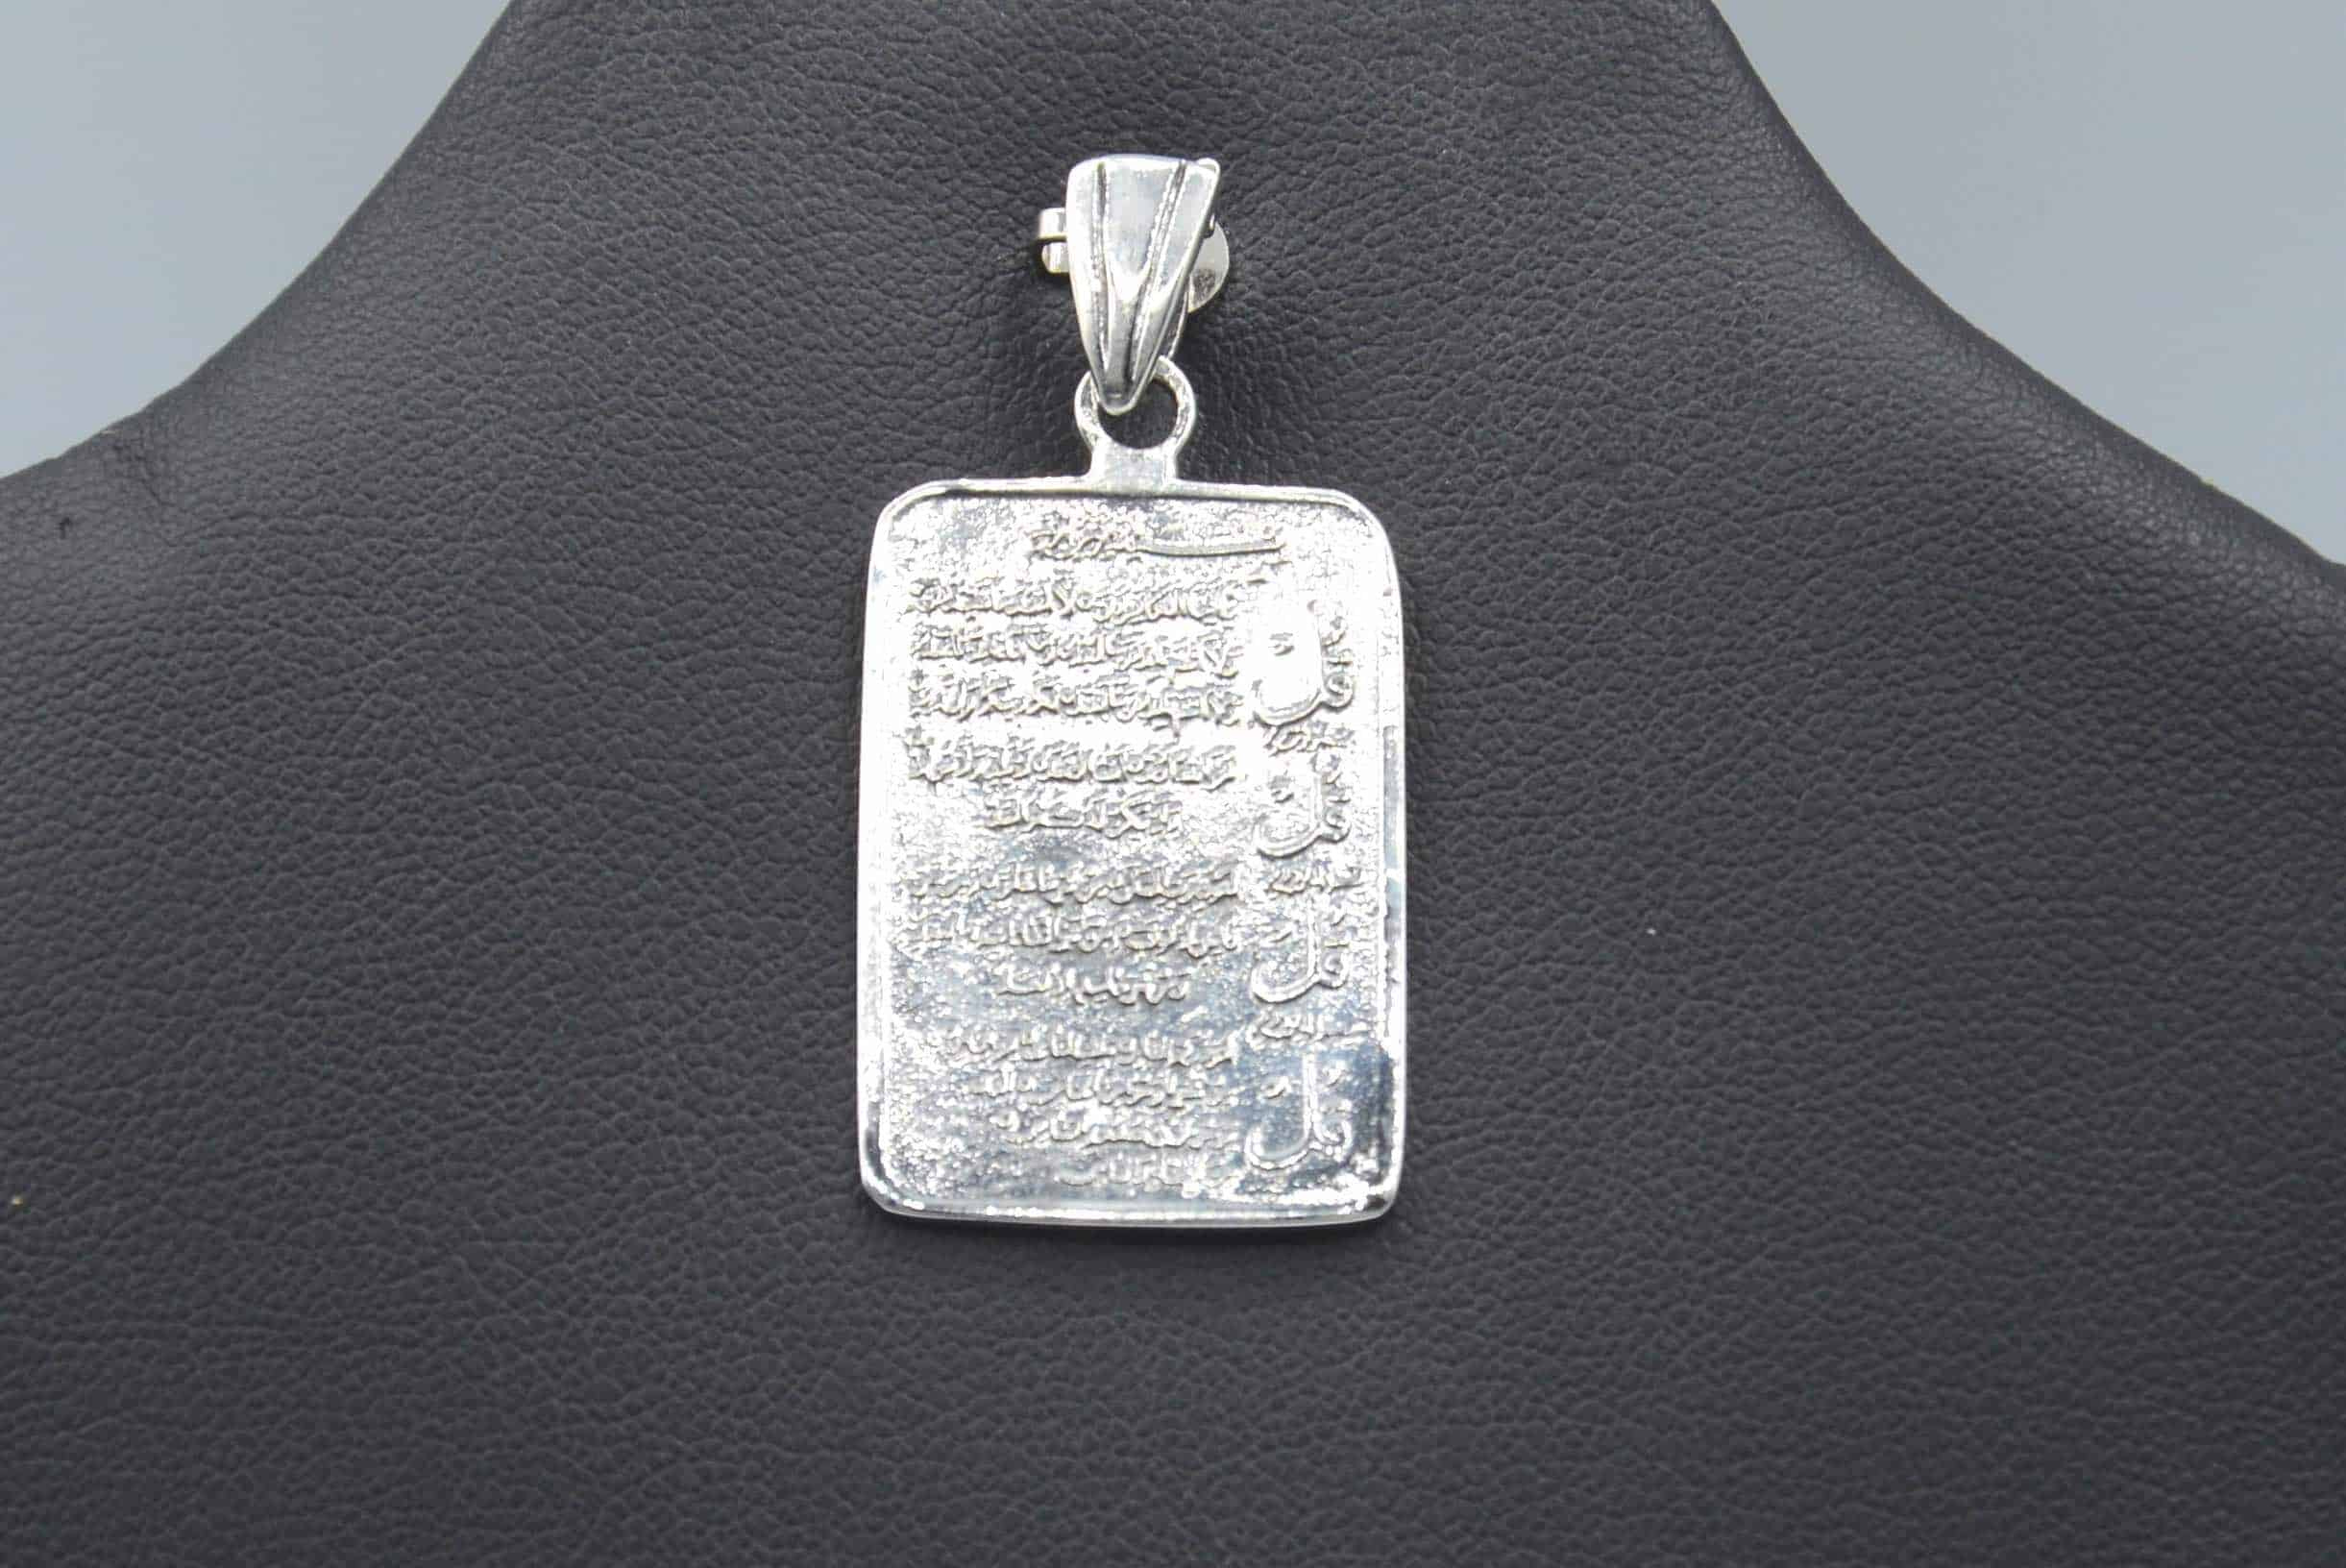 642f7db2d190ad 925 Silver Pendant - 4 Qul - Silver Jewellery and Gemstones ...